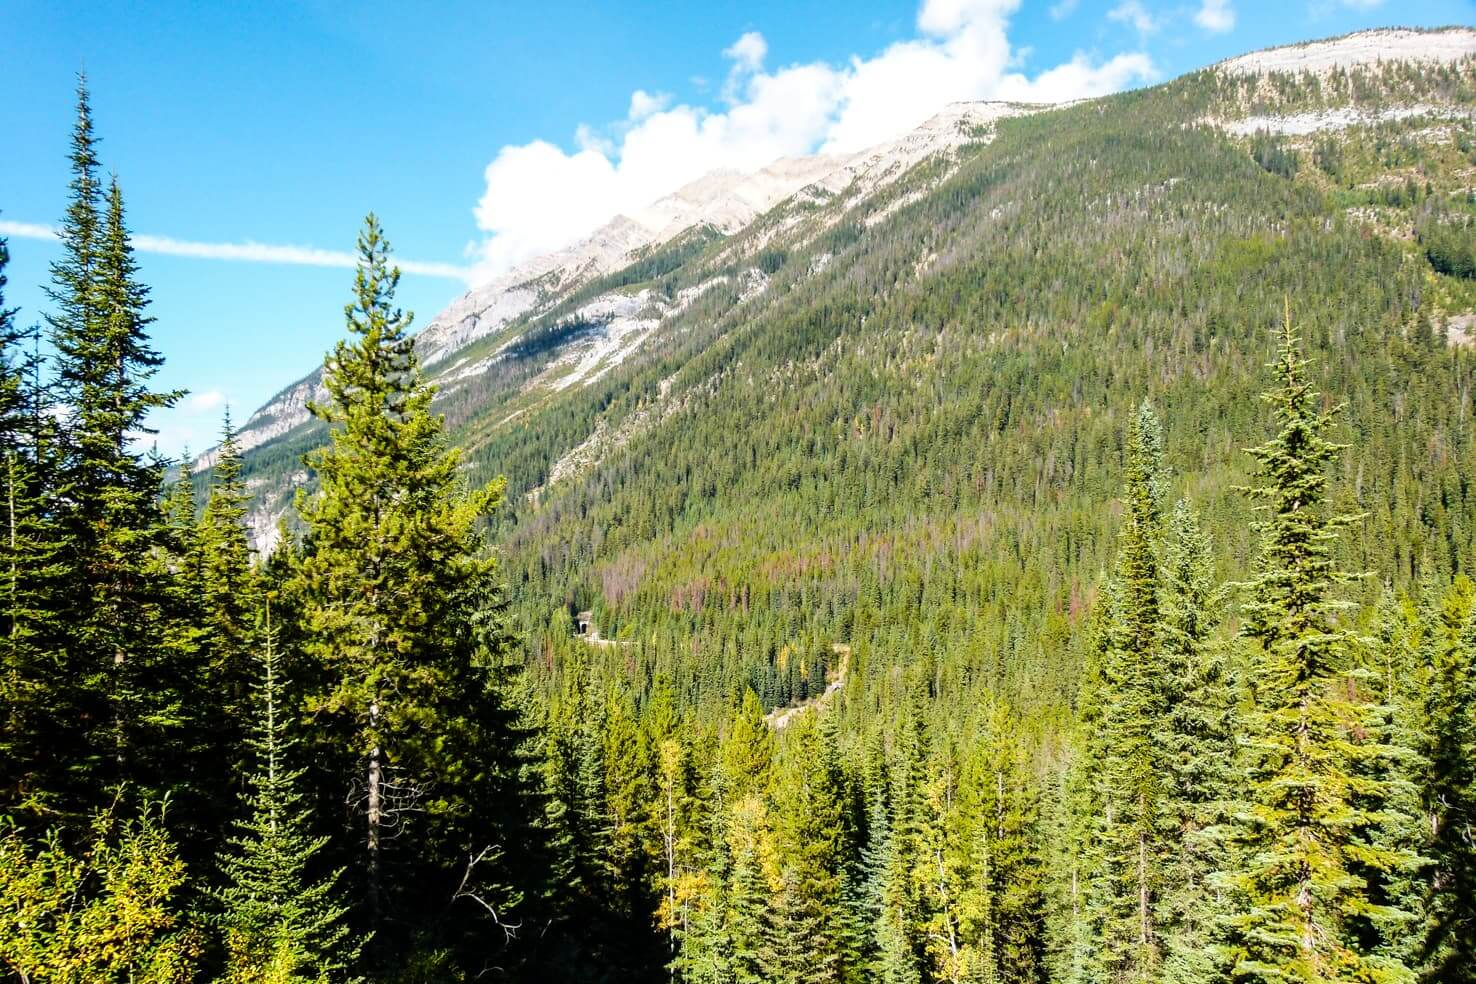 Adventure travel guide to Yoho National Park - Spiral Tunnel